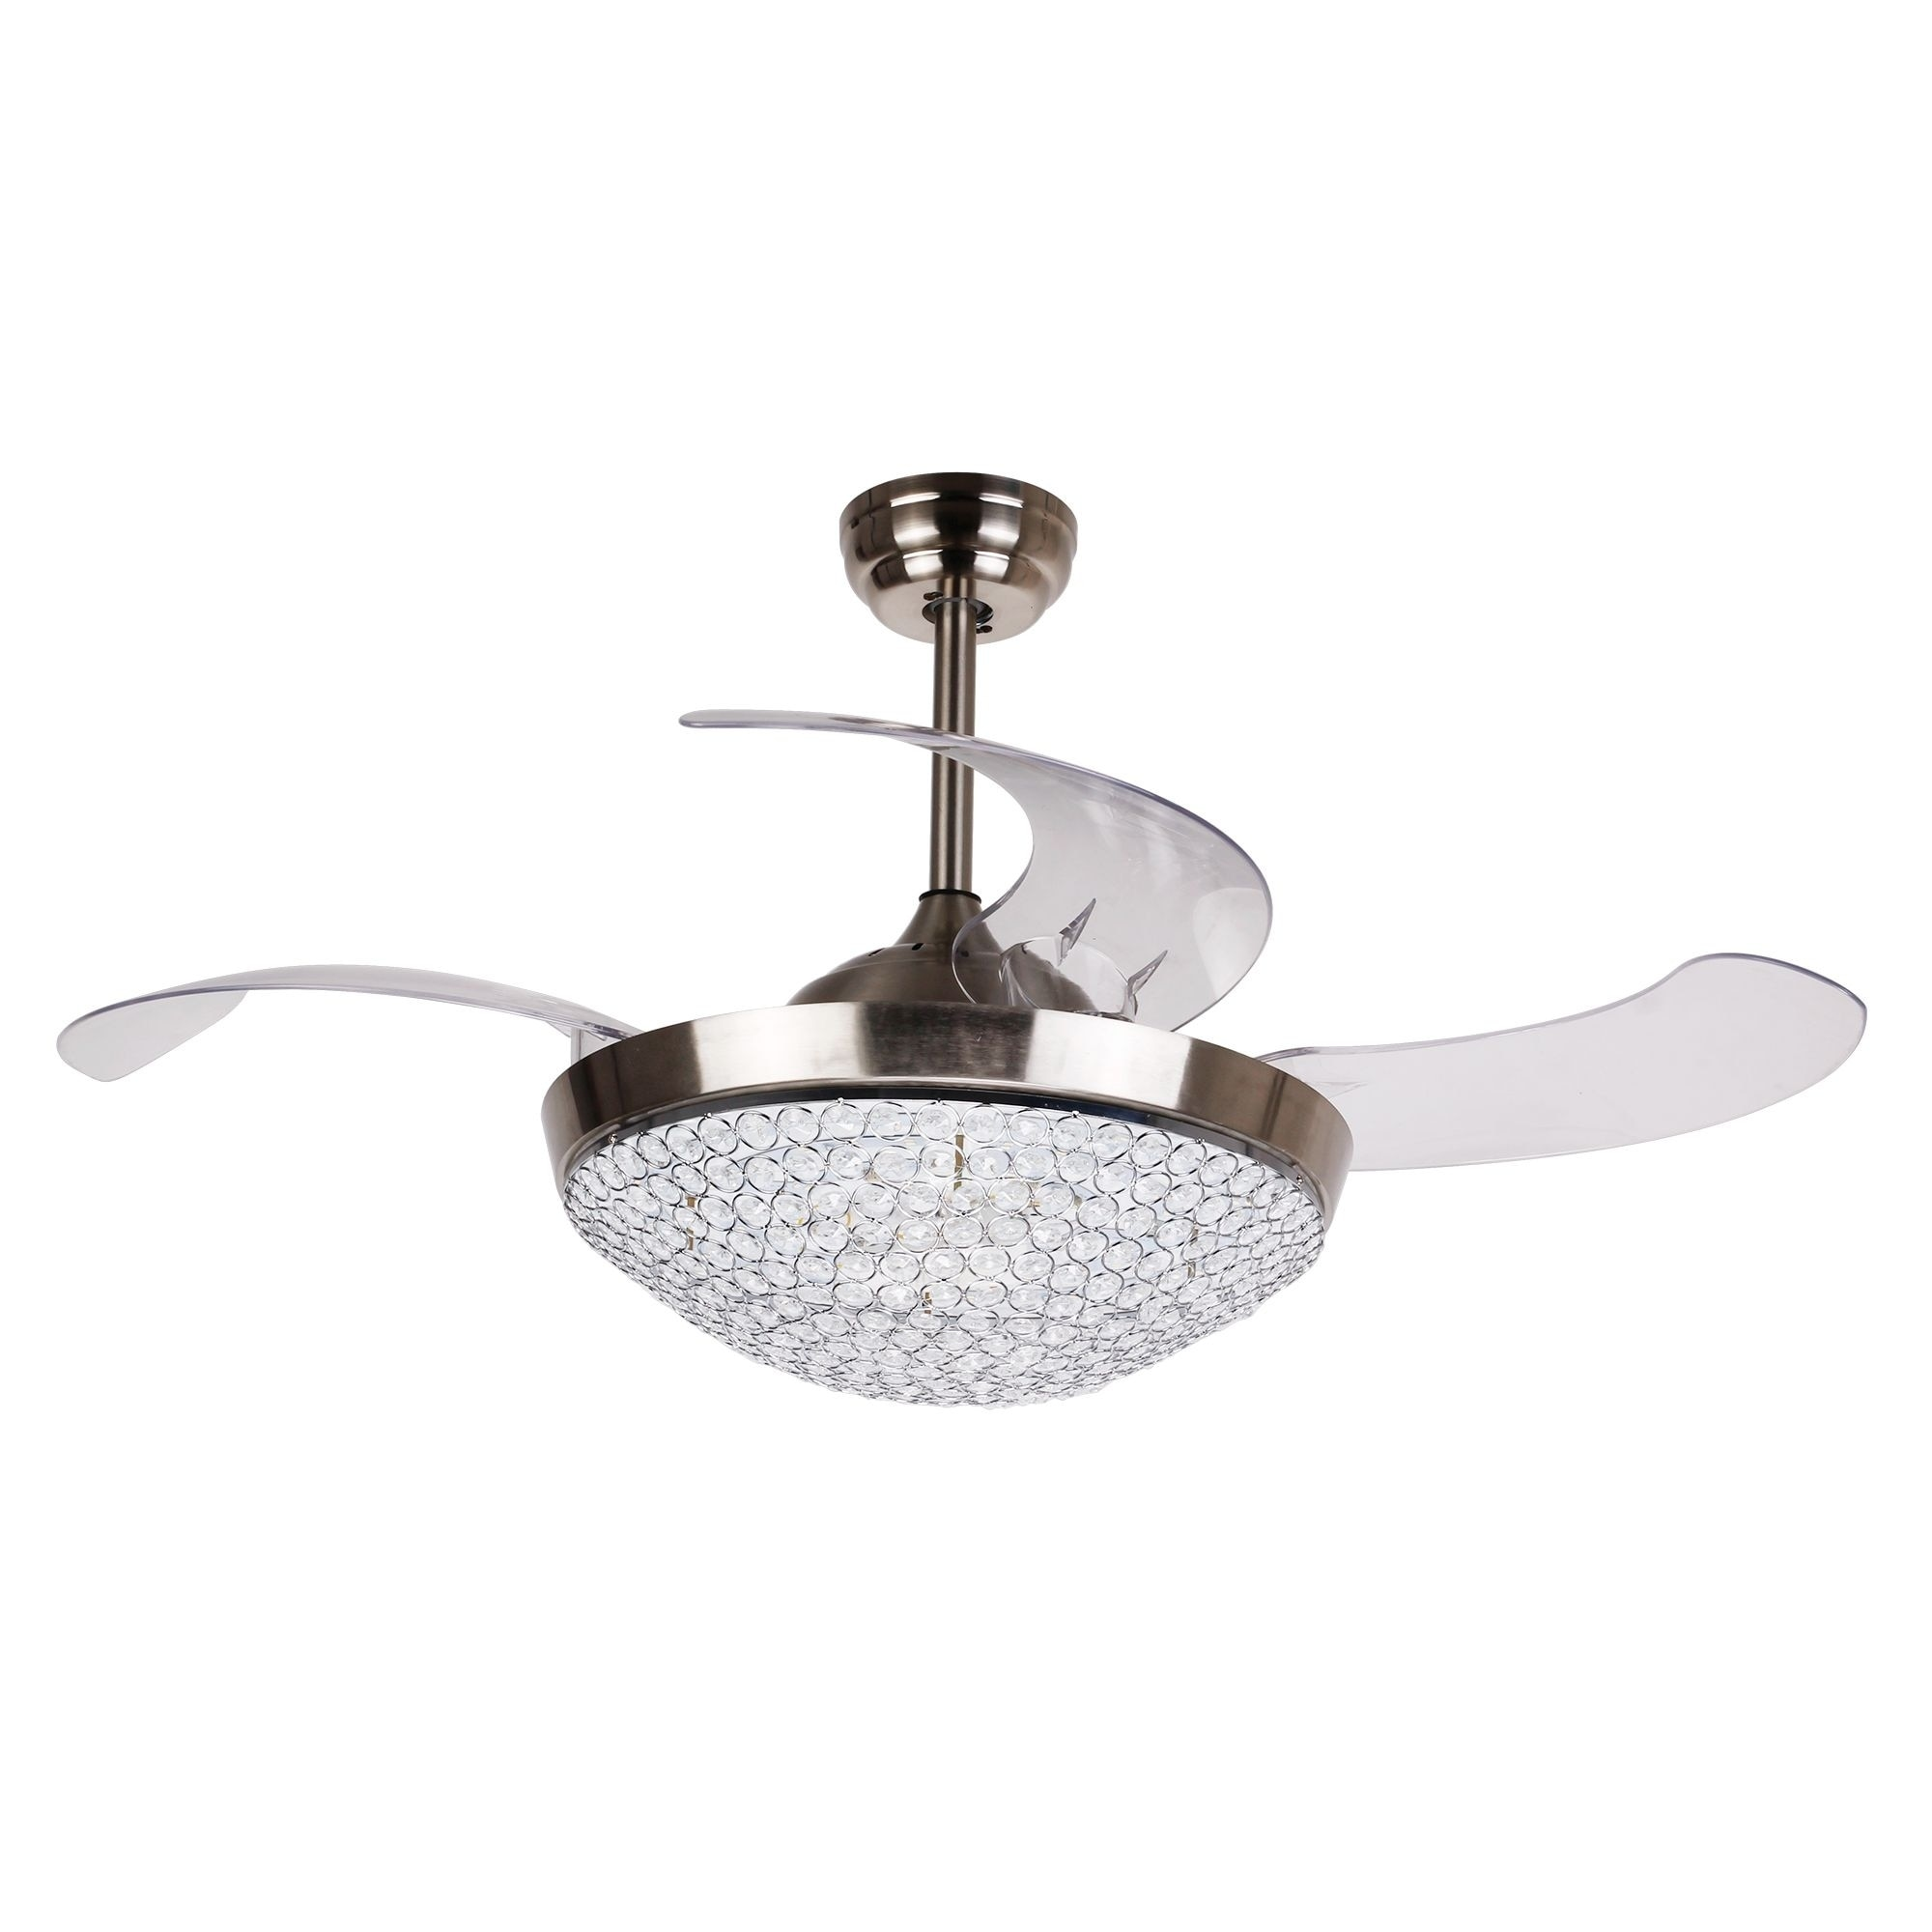 Shop Dimmable 42-inch LED Crystal Ceiling Fan With Foldable Blades ...